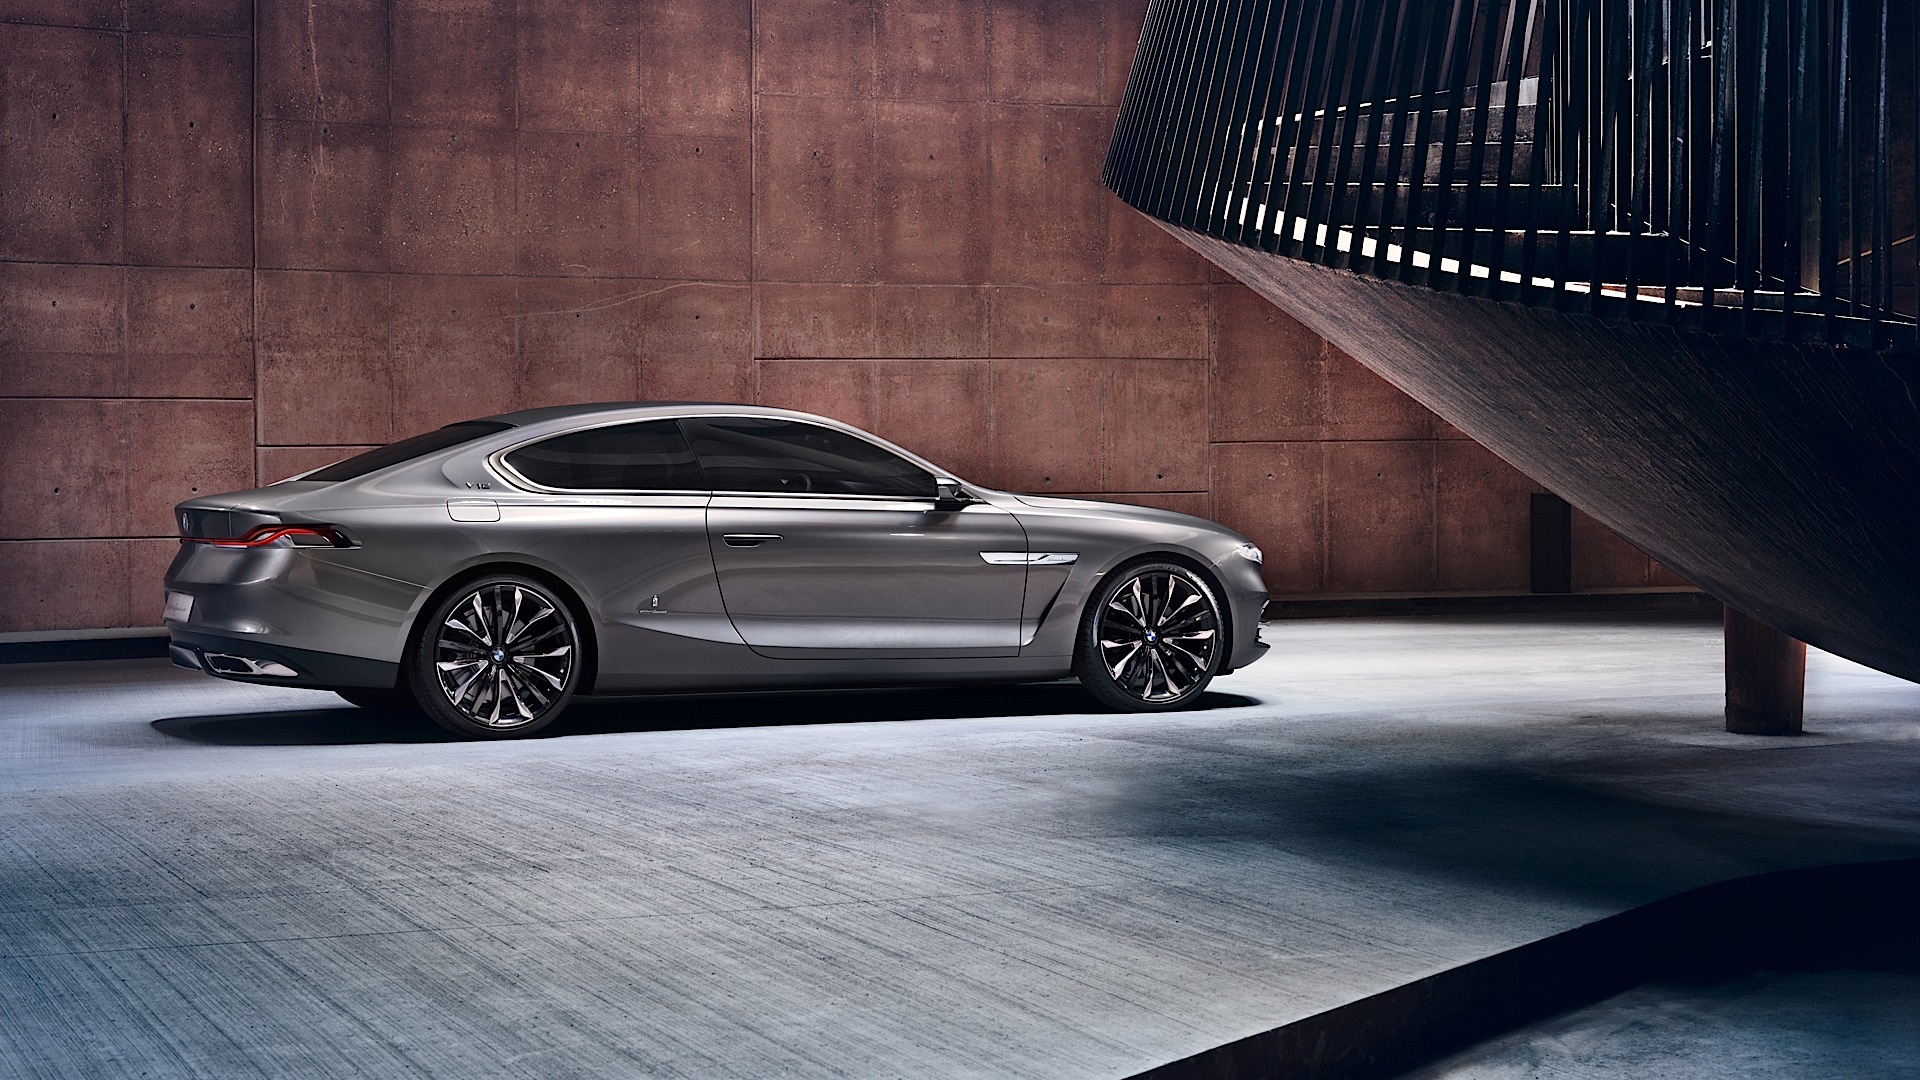 bmw-pininfarina-gran-lusso-coupe-breaks-cover-videophoto-gallery 7